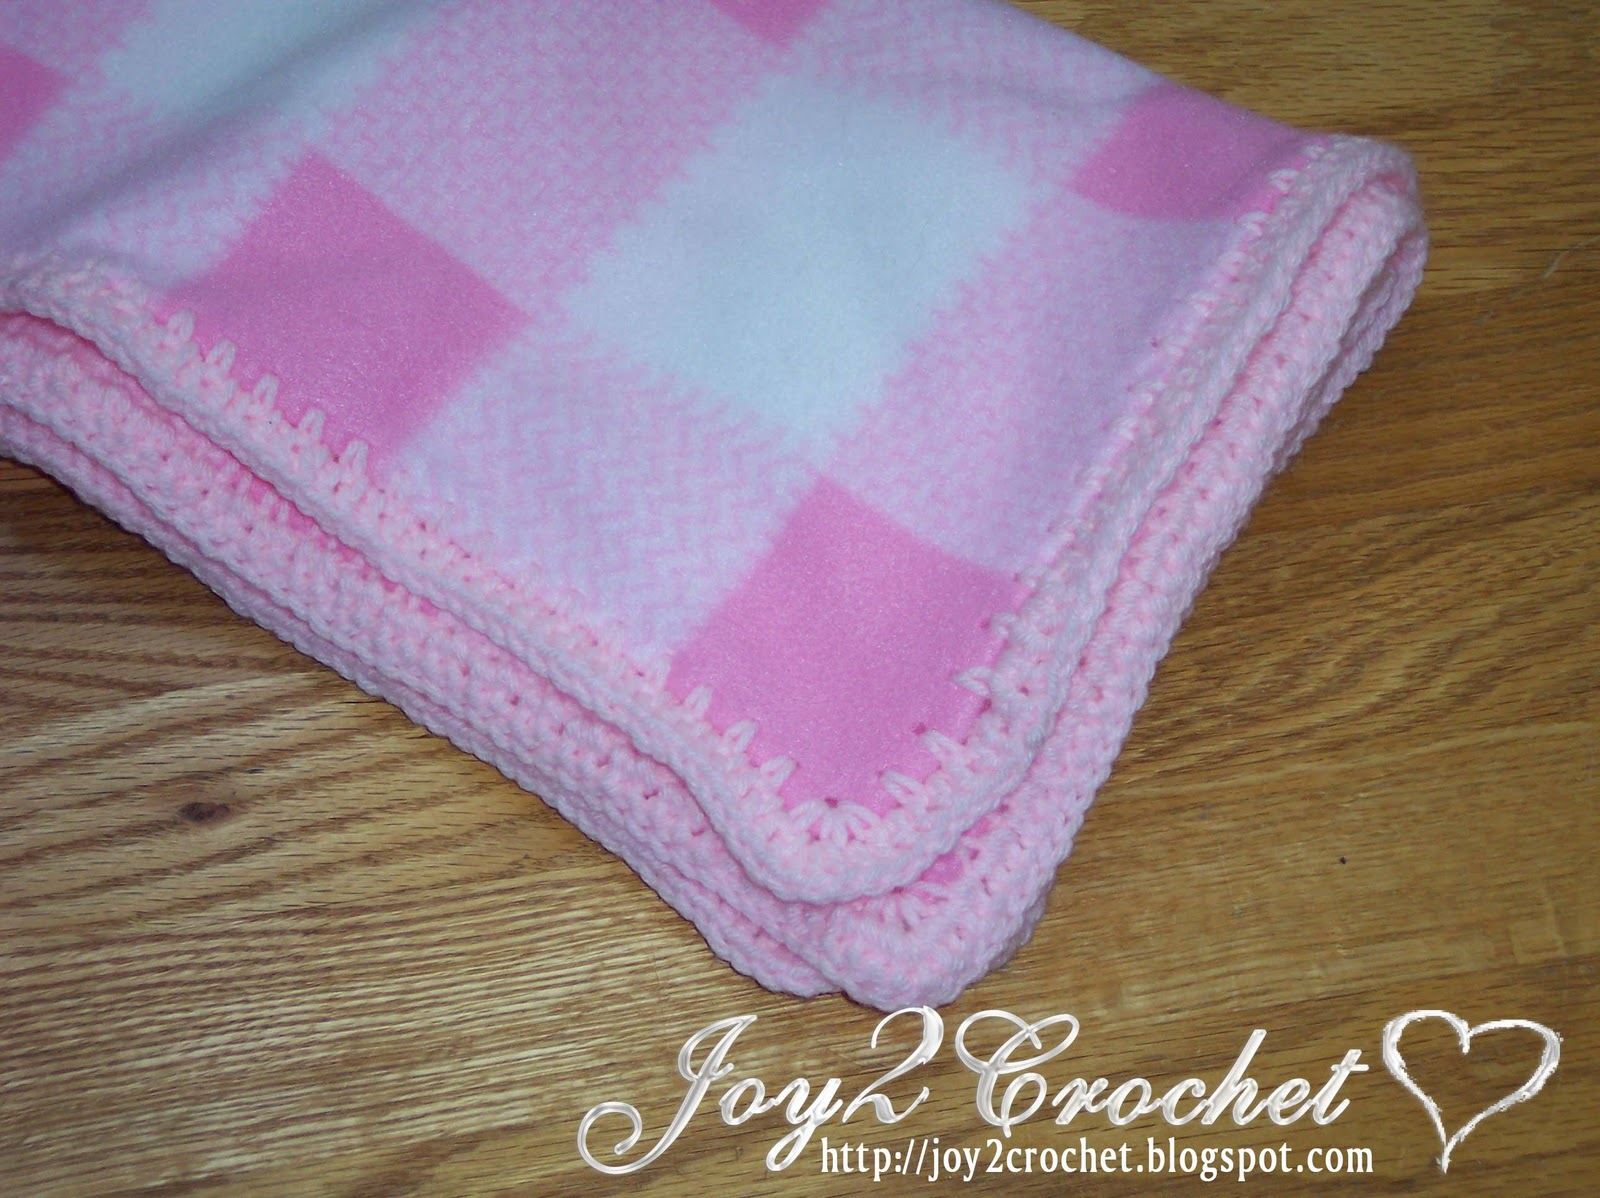 Crocheting Edges On Fleece Blankets : Joy 2 Crochet: Fleece Baby Blankets with Crocheted Edge